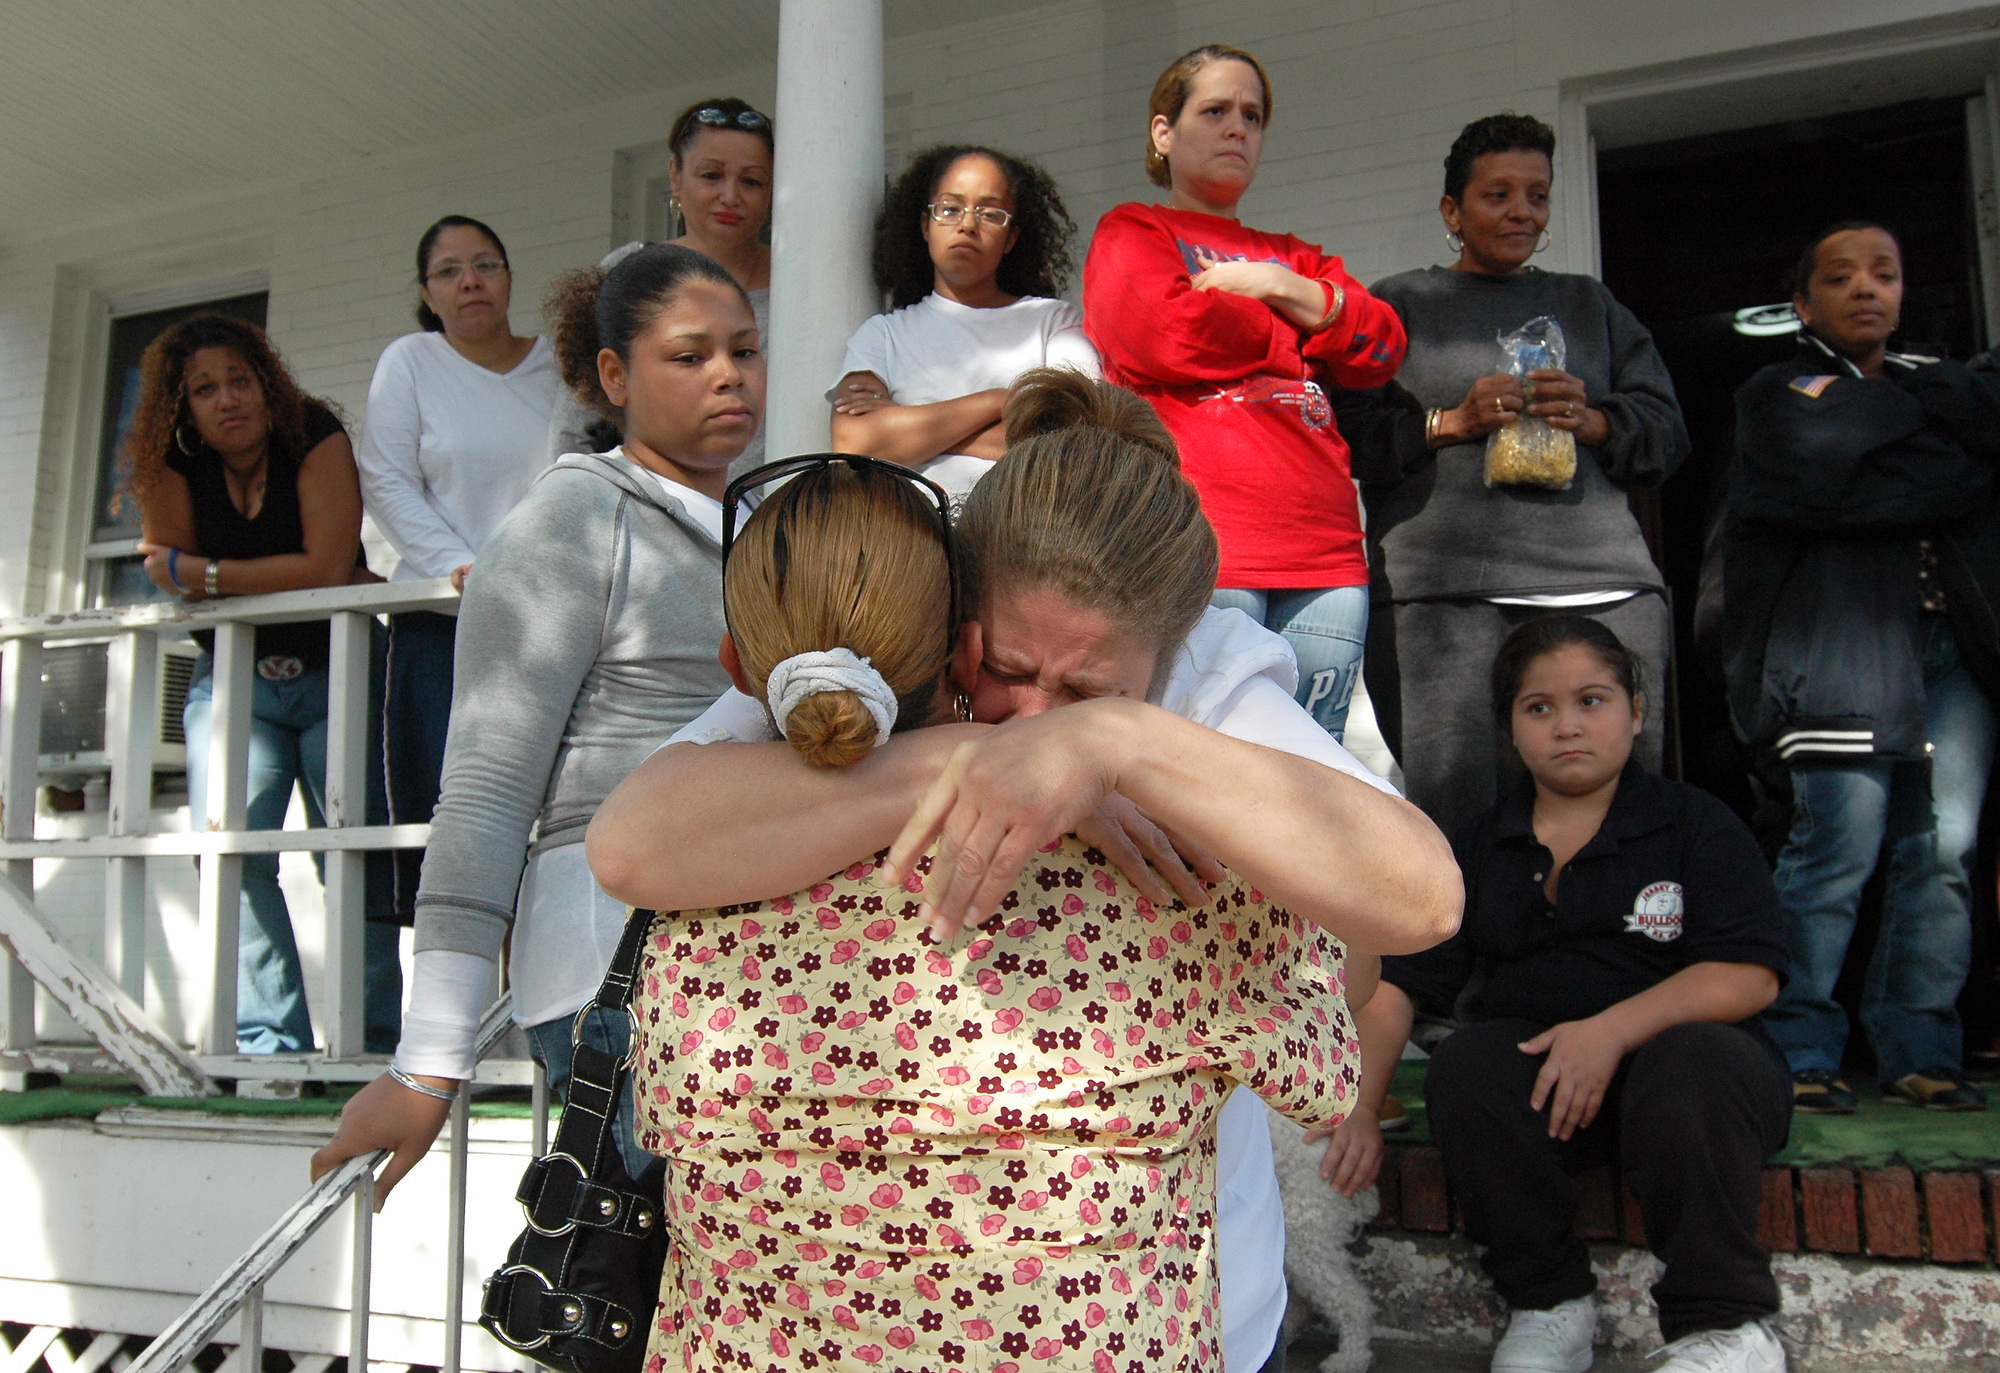 Denise Batista is comforted by her friend, Claribel Cruz, surrounded by family members and friends who gathered at her home in the Heights a day after her son, Juan Batista, 26, was shot to death in what authorities believe was a retaliatory killing in response to the shooting of a Latin Kings member earlier in the year. Denise Batista called her son {quote}a happy person{quote} who was trying to put his life back together after spending time in jail. (Reena Rose Sibayan | The Jersey Journal)